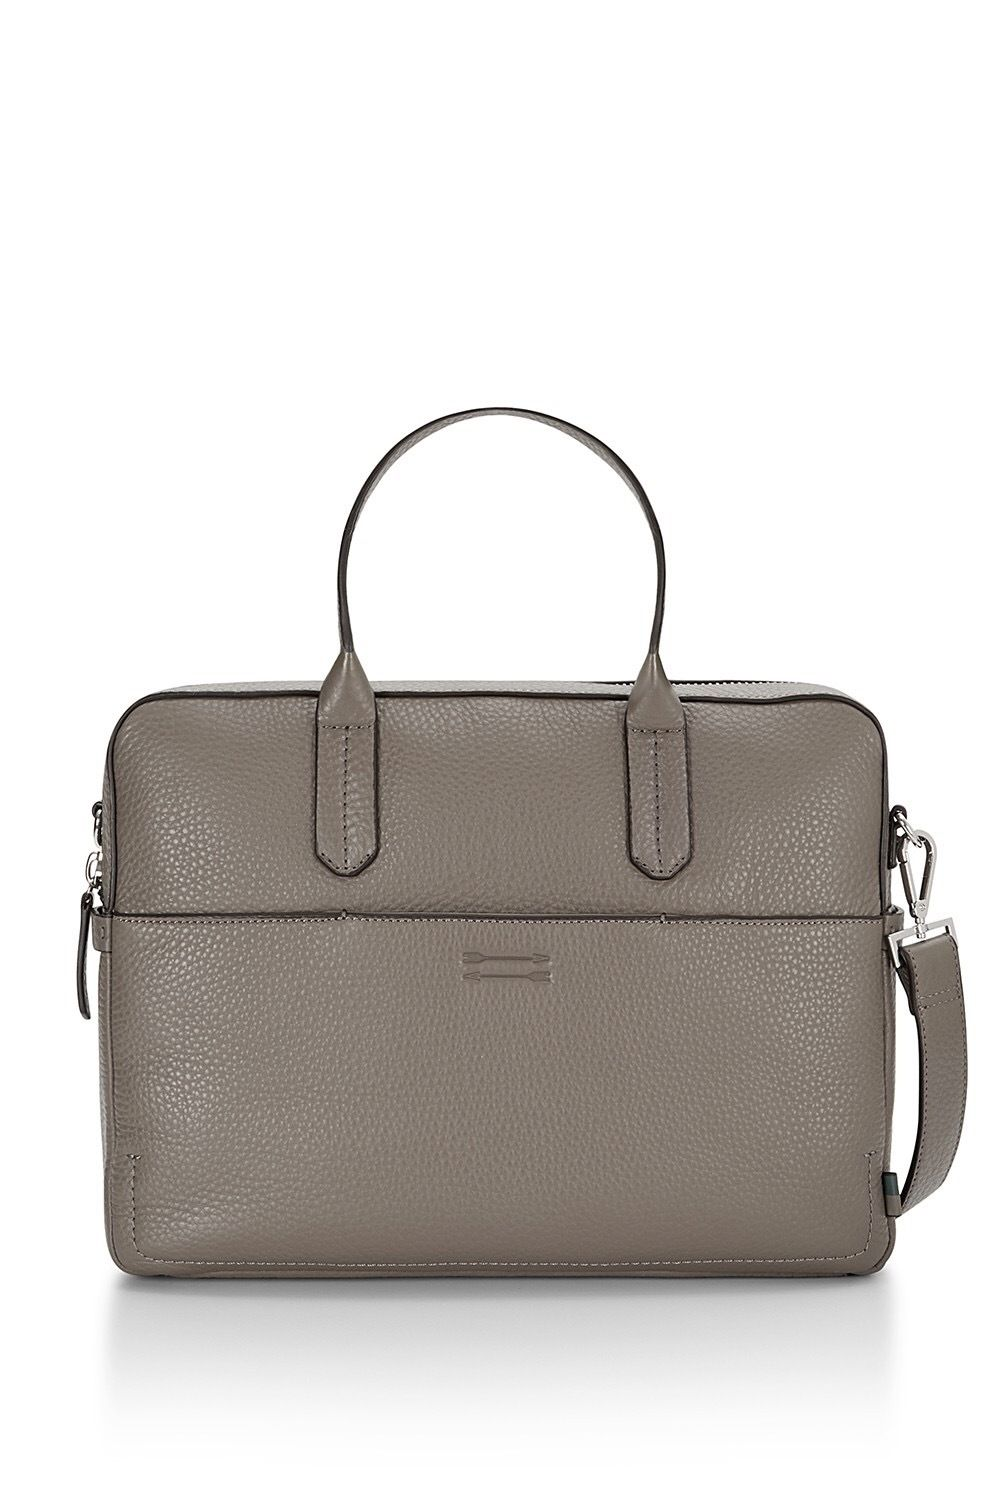 for the Lady Professional! ELEGANT NEW Rebecca Minkoff Dark Taupe Leather Top Zip Closure Fulton Briefcase